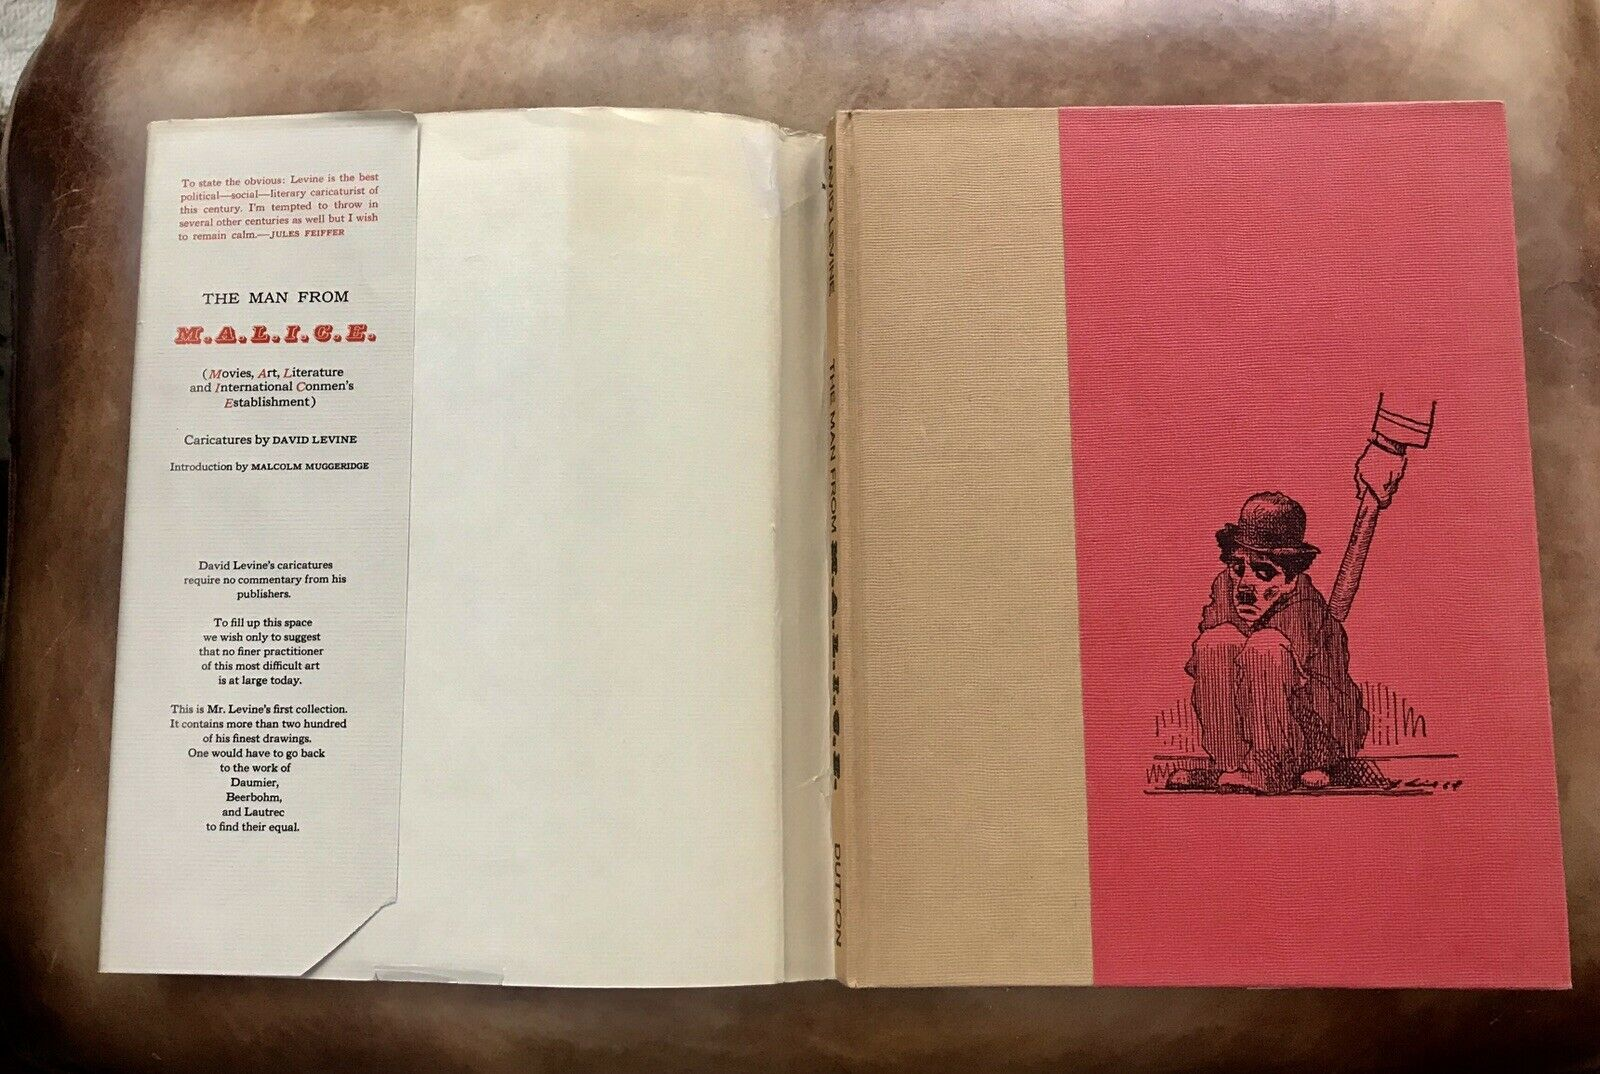 Man from M.A.L.I.C.E. Caricatures Levine Fitzgerald T Williams Jack Kerouac 1966 |